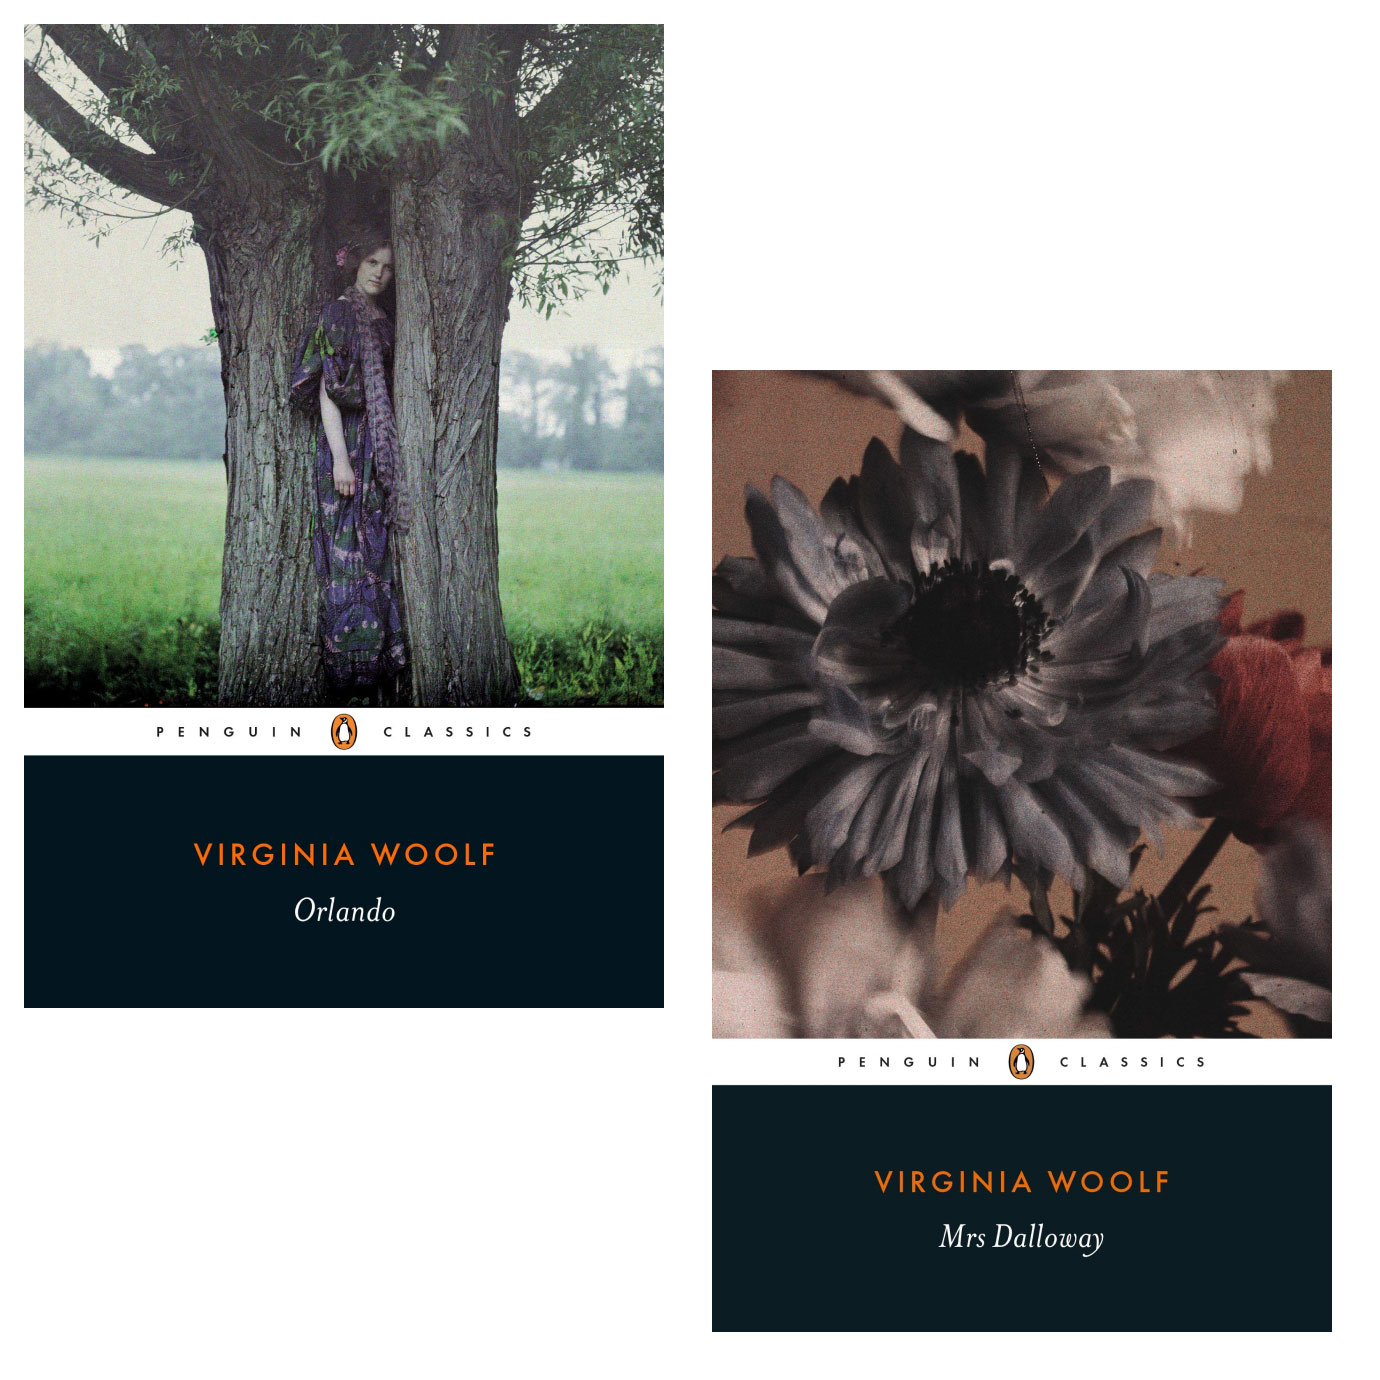 The bookcovers for Orlando and Mrs Dalloway.